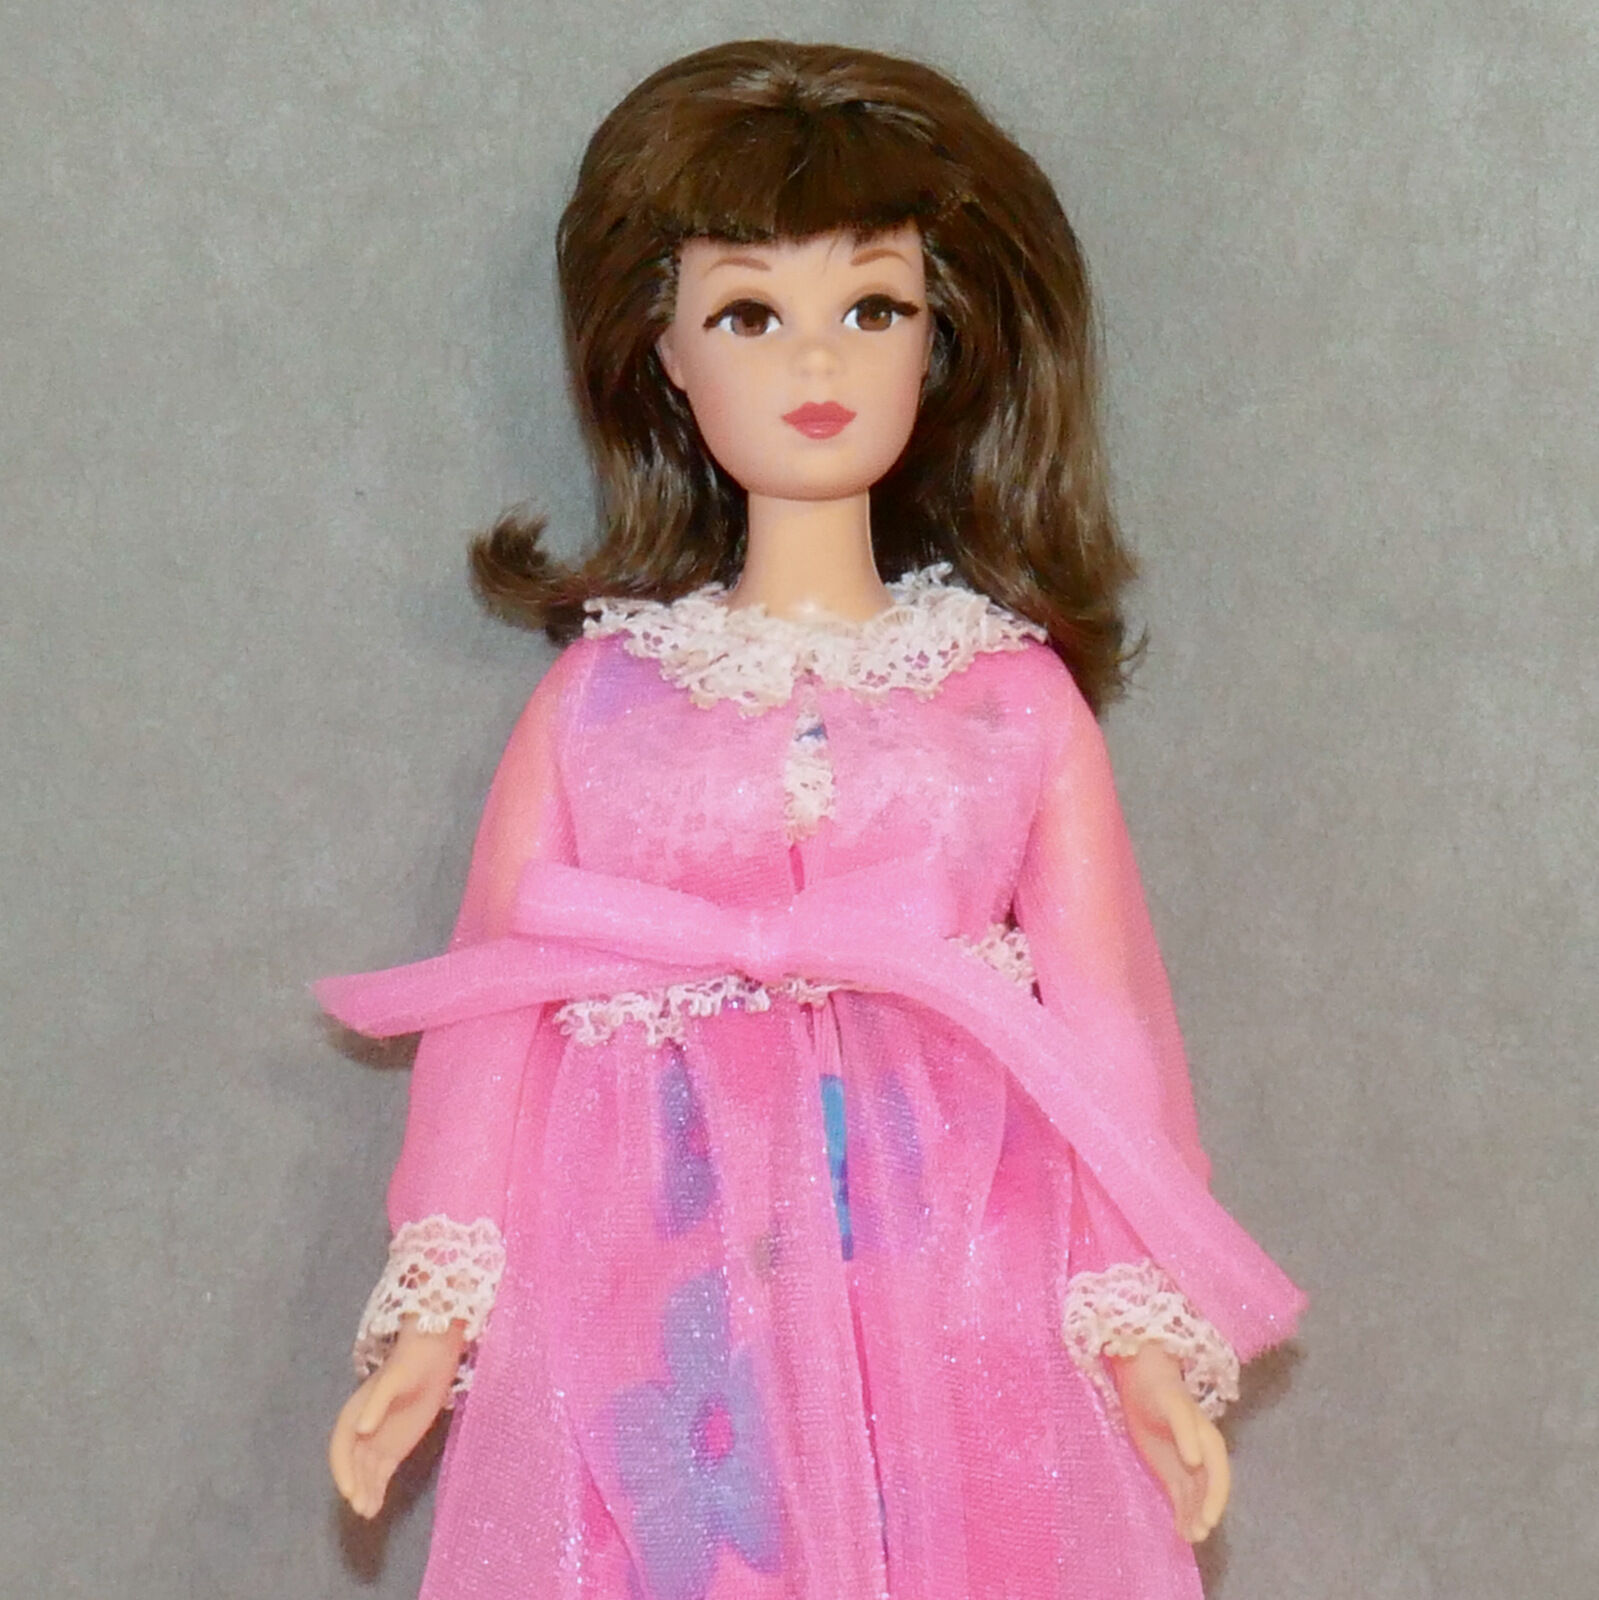 Barbie FRANCIE Doll REPRO AUTHENTIC Clothes 1968 - 1969 NIGHT BLOOMERS Pink M/C